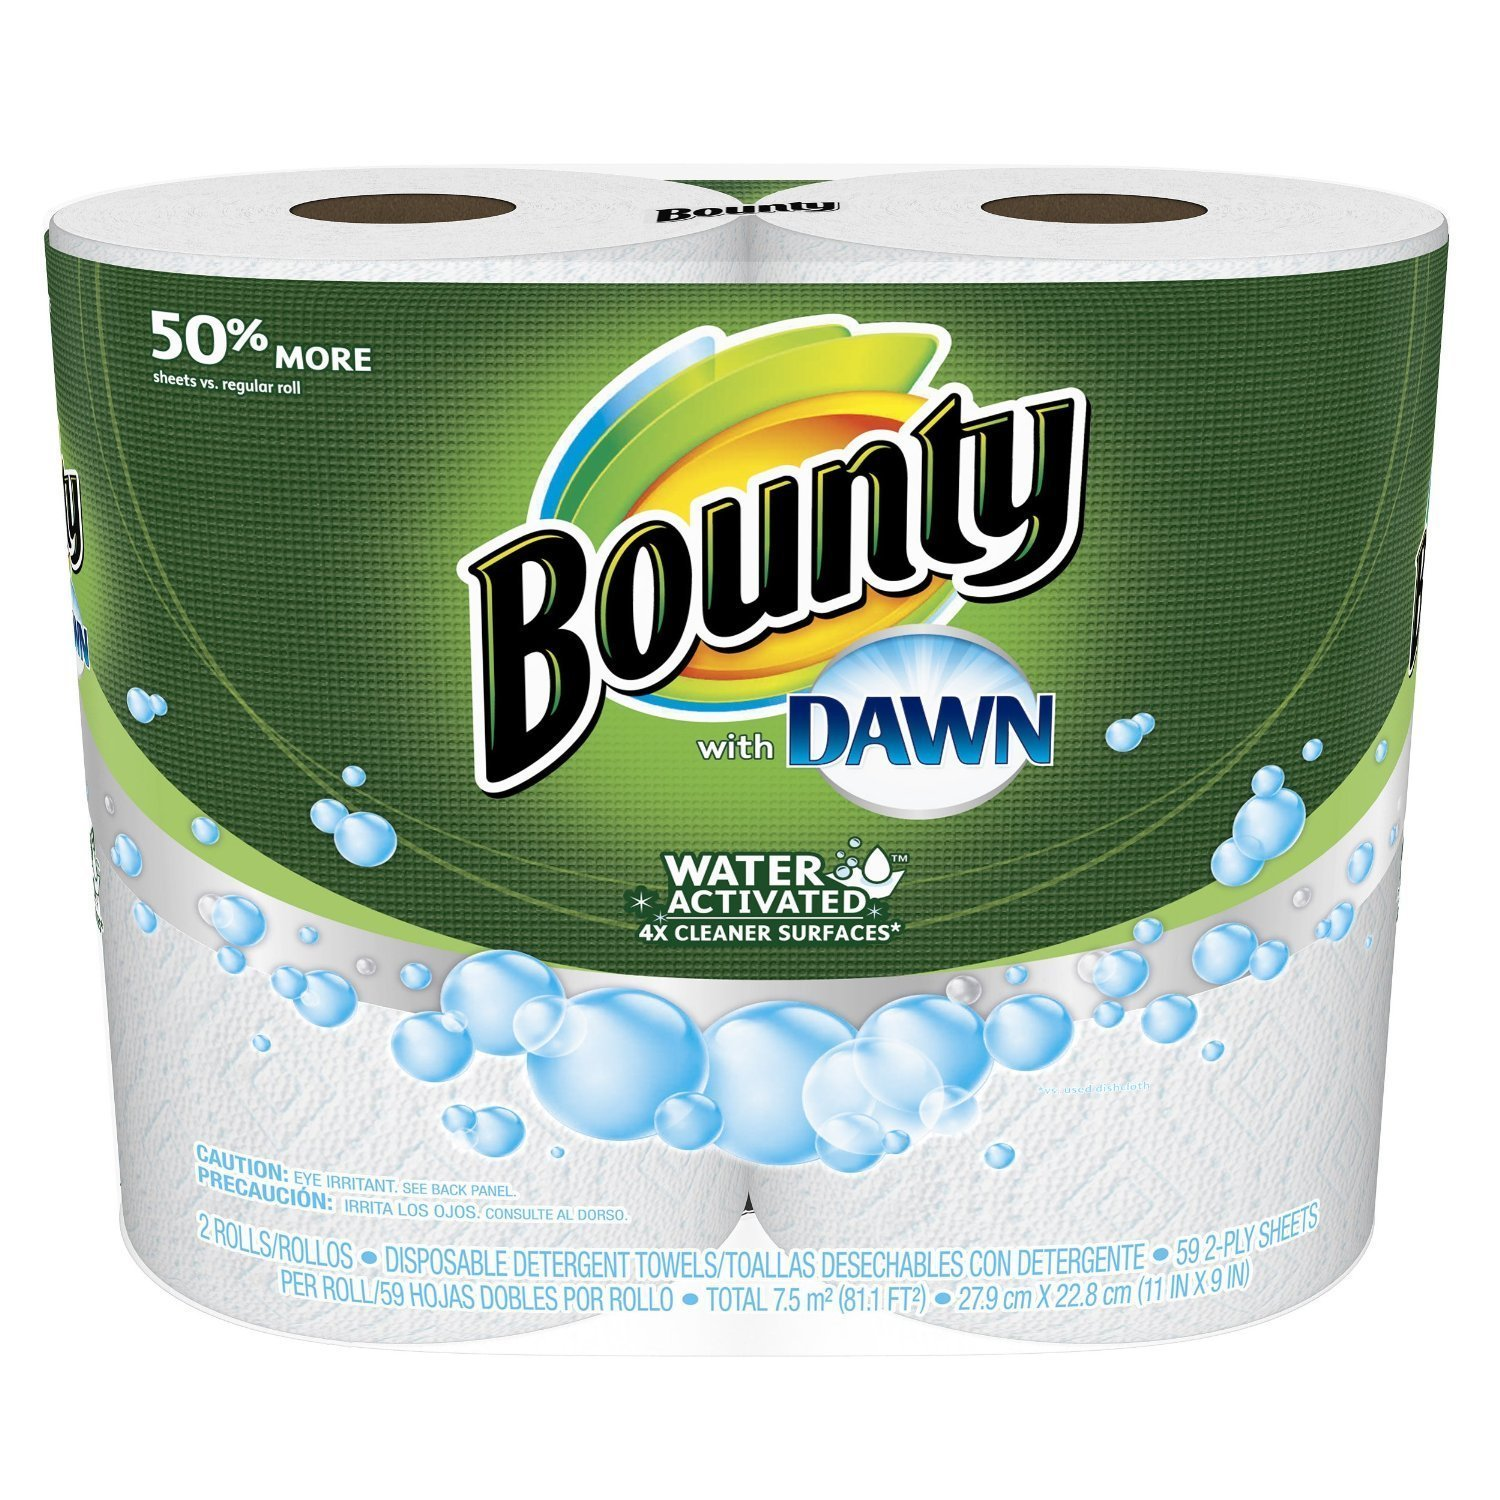 Amazon.com : Bounty with Dawn Giant Rolls, White, 2 Count (Pack of 4) : Grocery & Gourmet Food